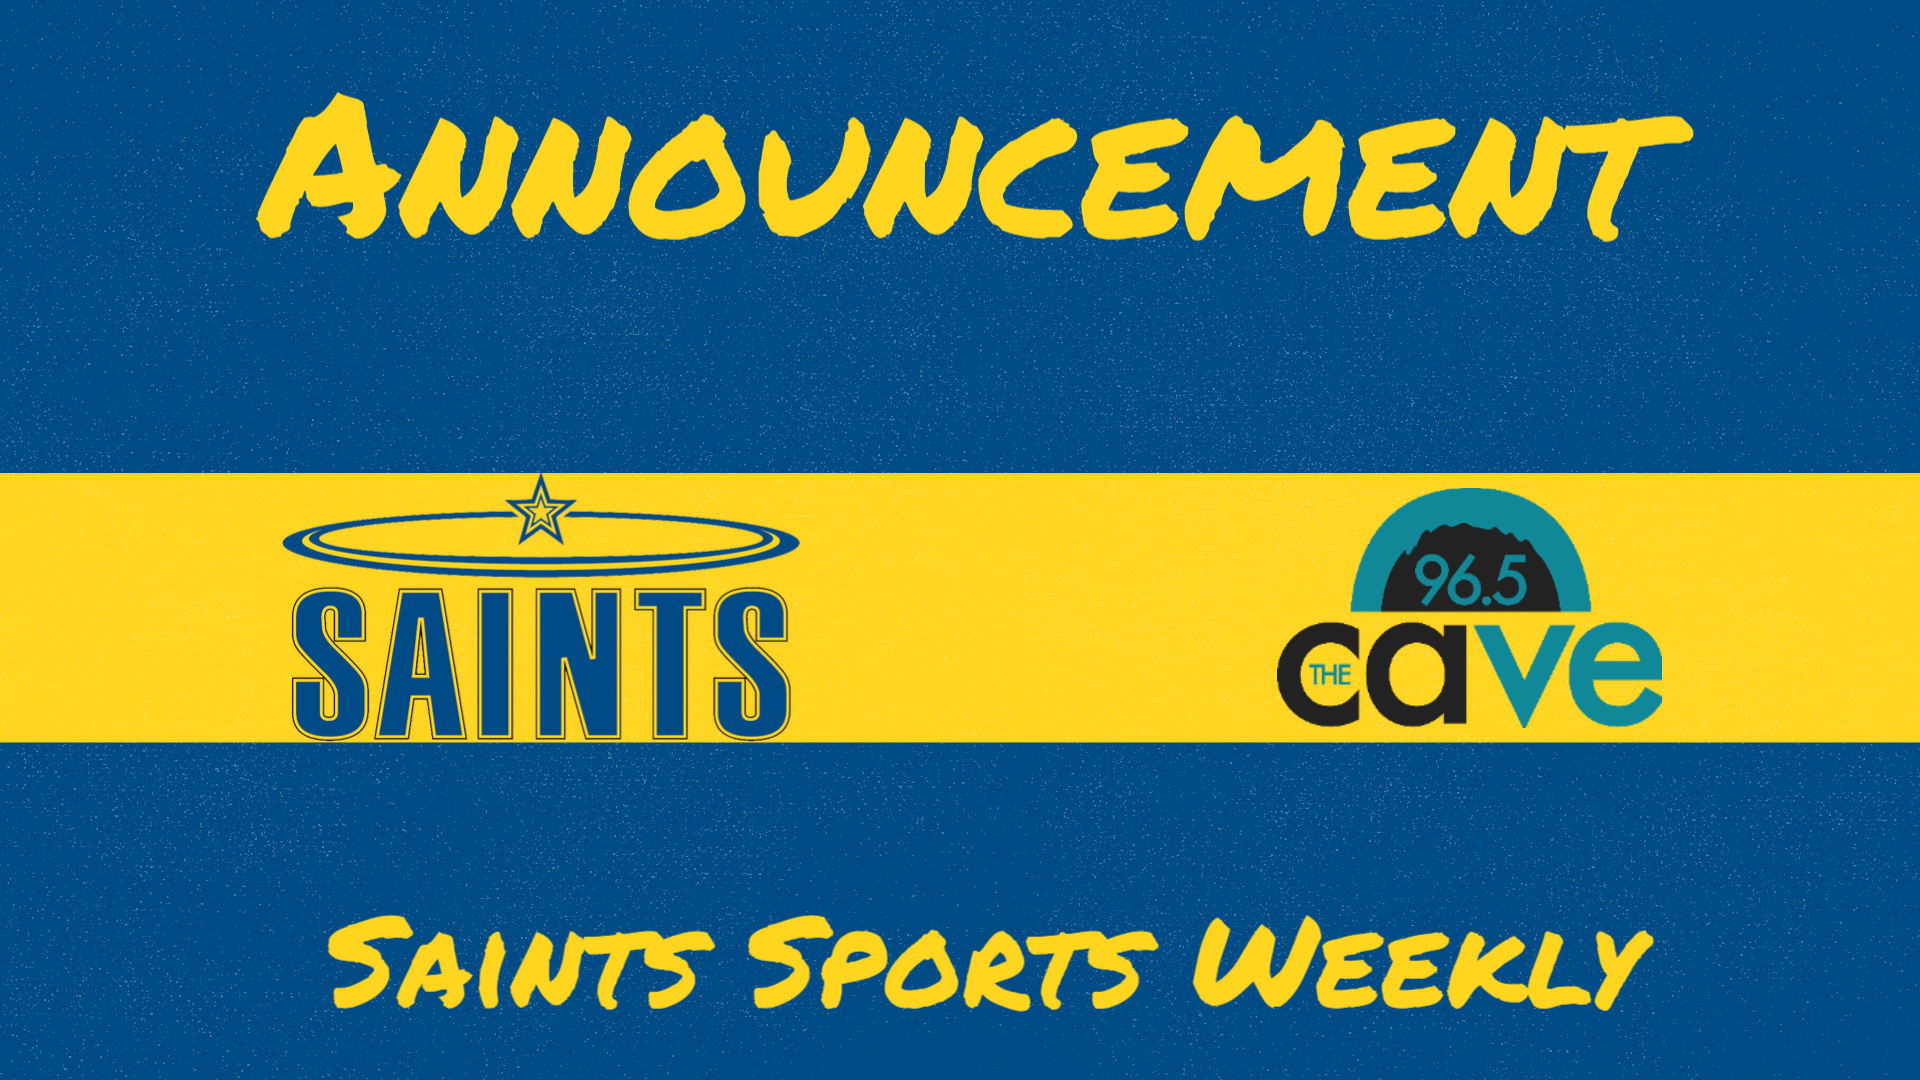 Saints Sports Weekly on 96.5 FM The Cave to Feature Women's Track and Field Monday Night